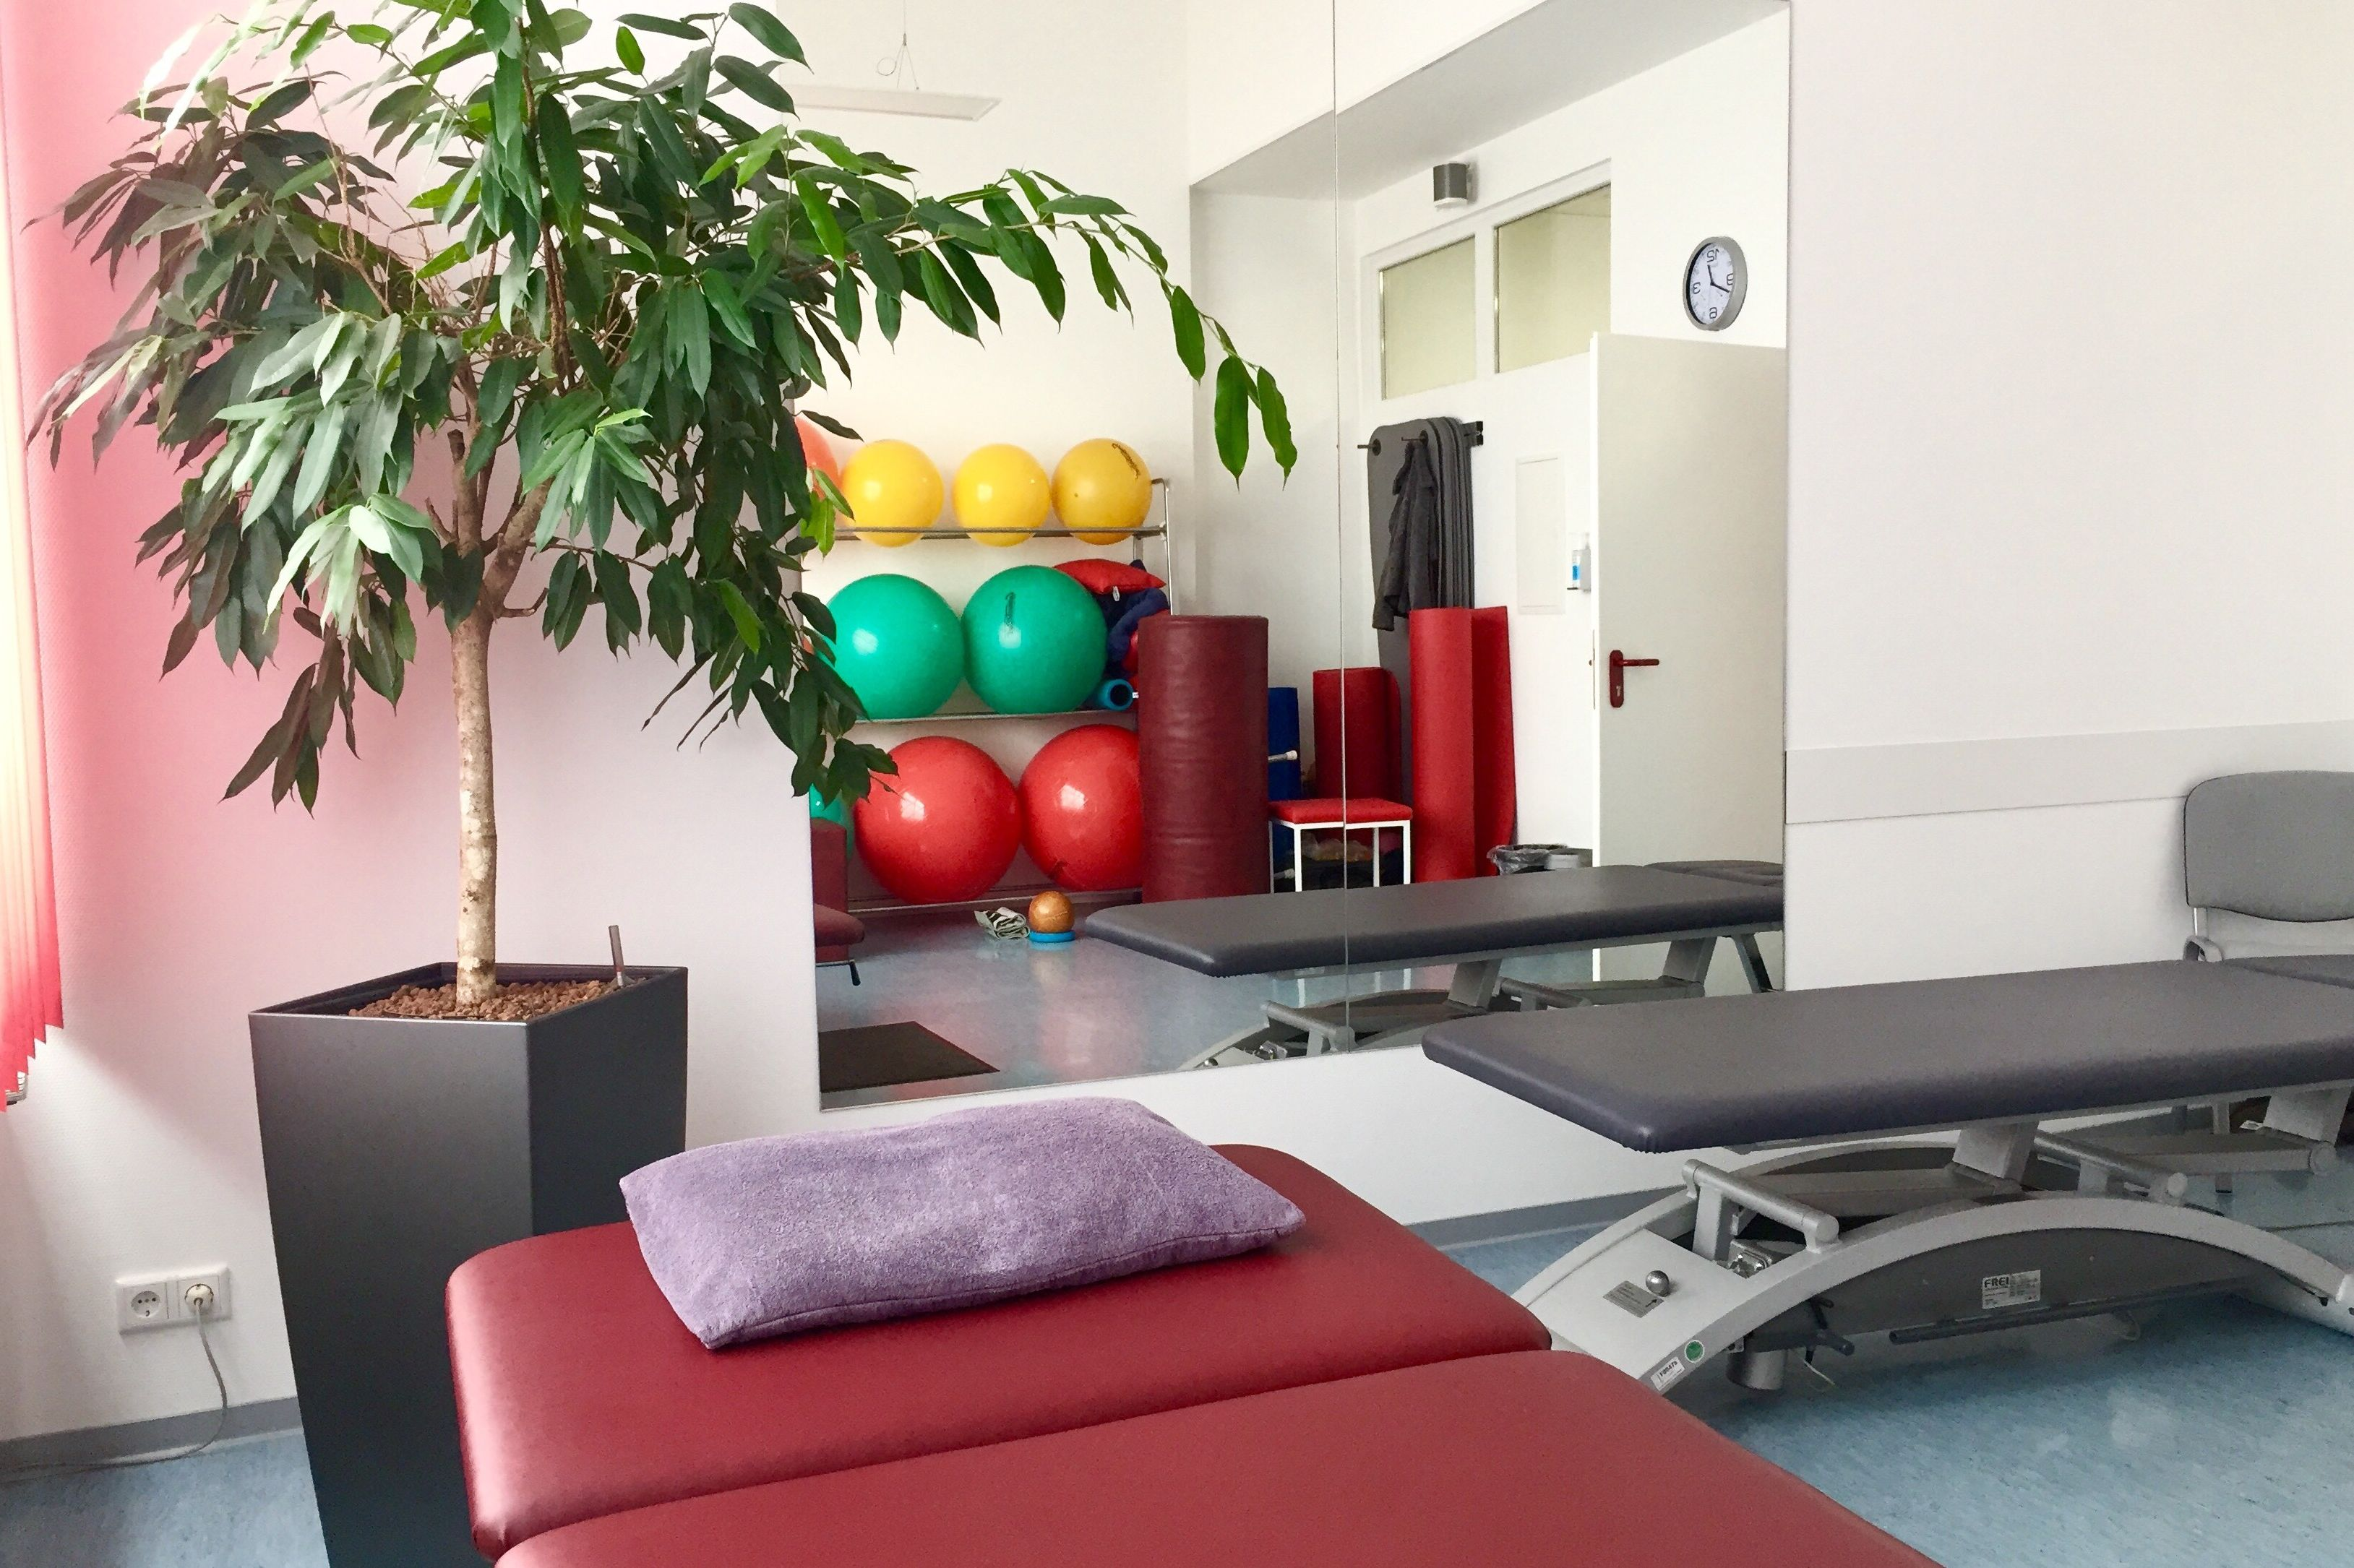 Physiotherapie am Samstag